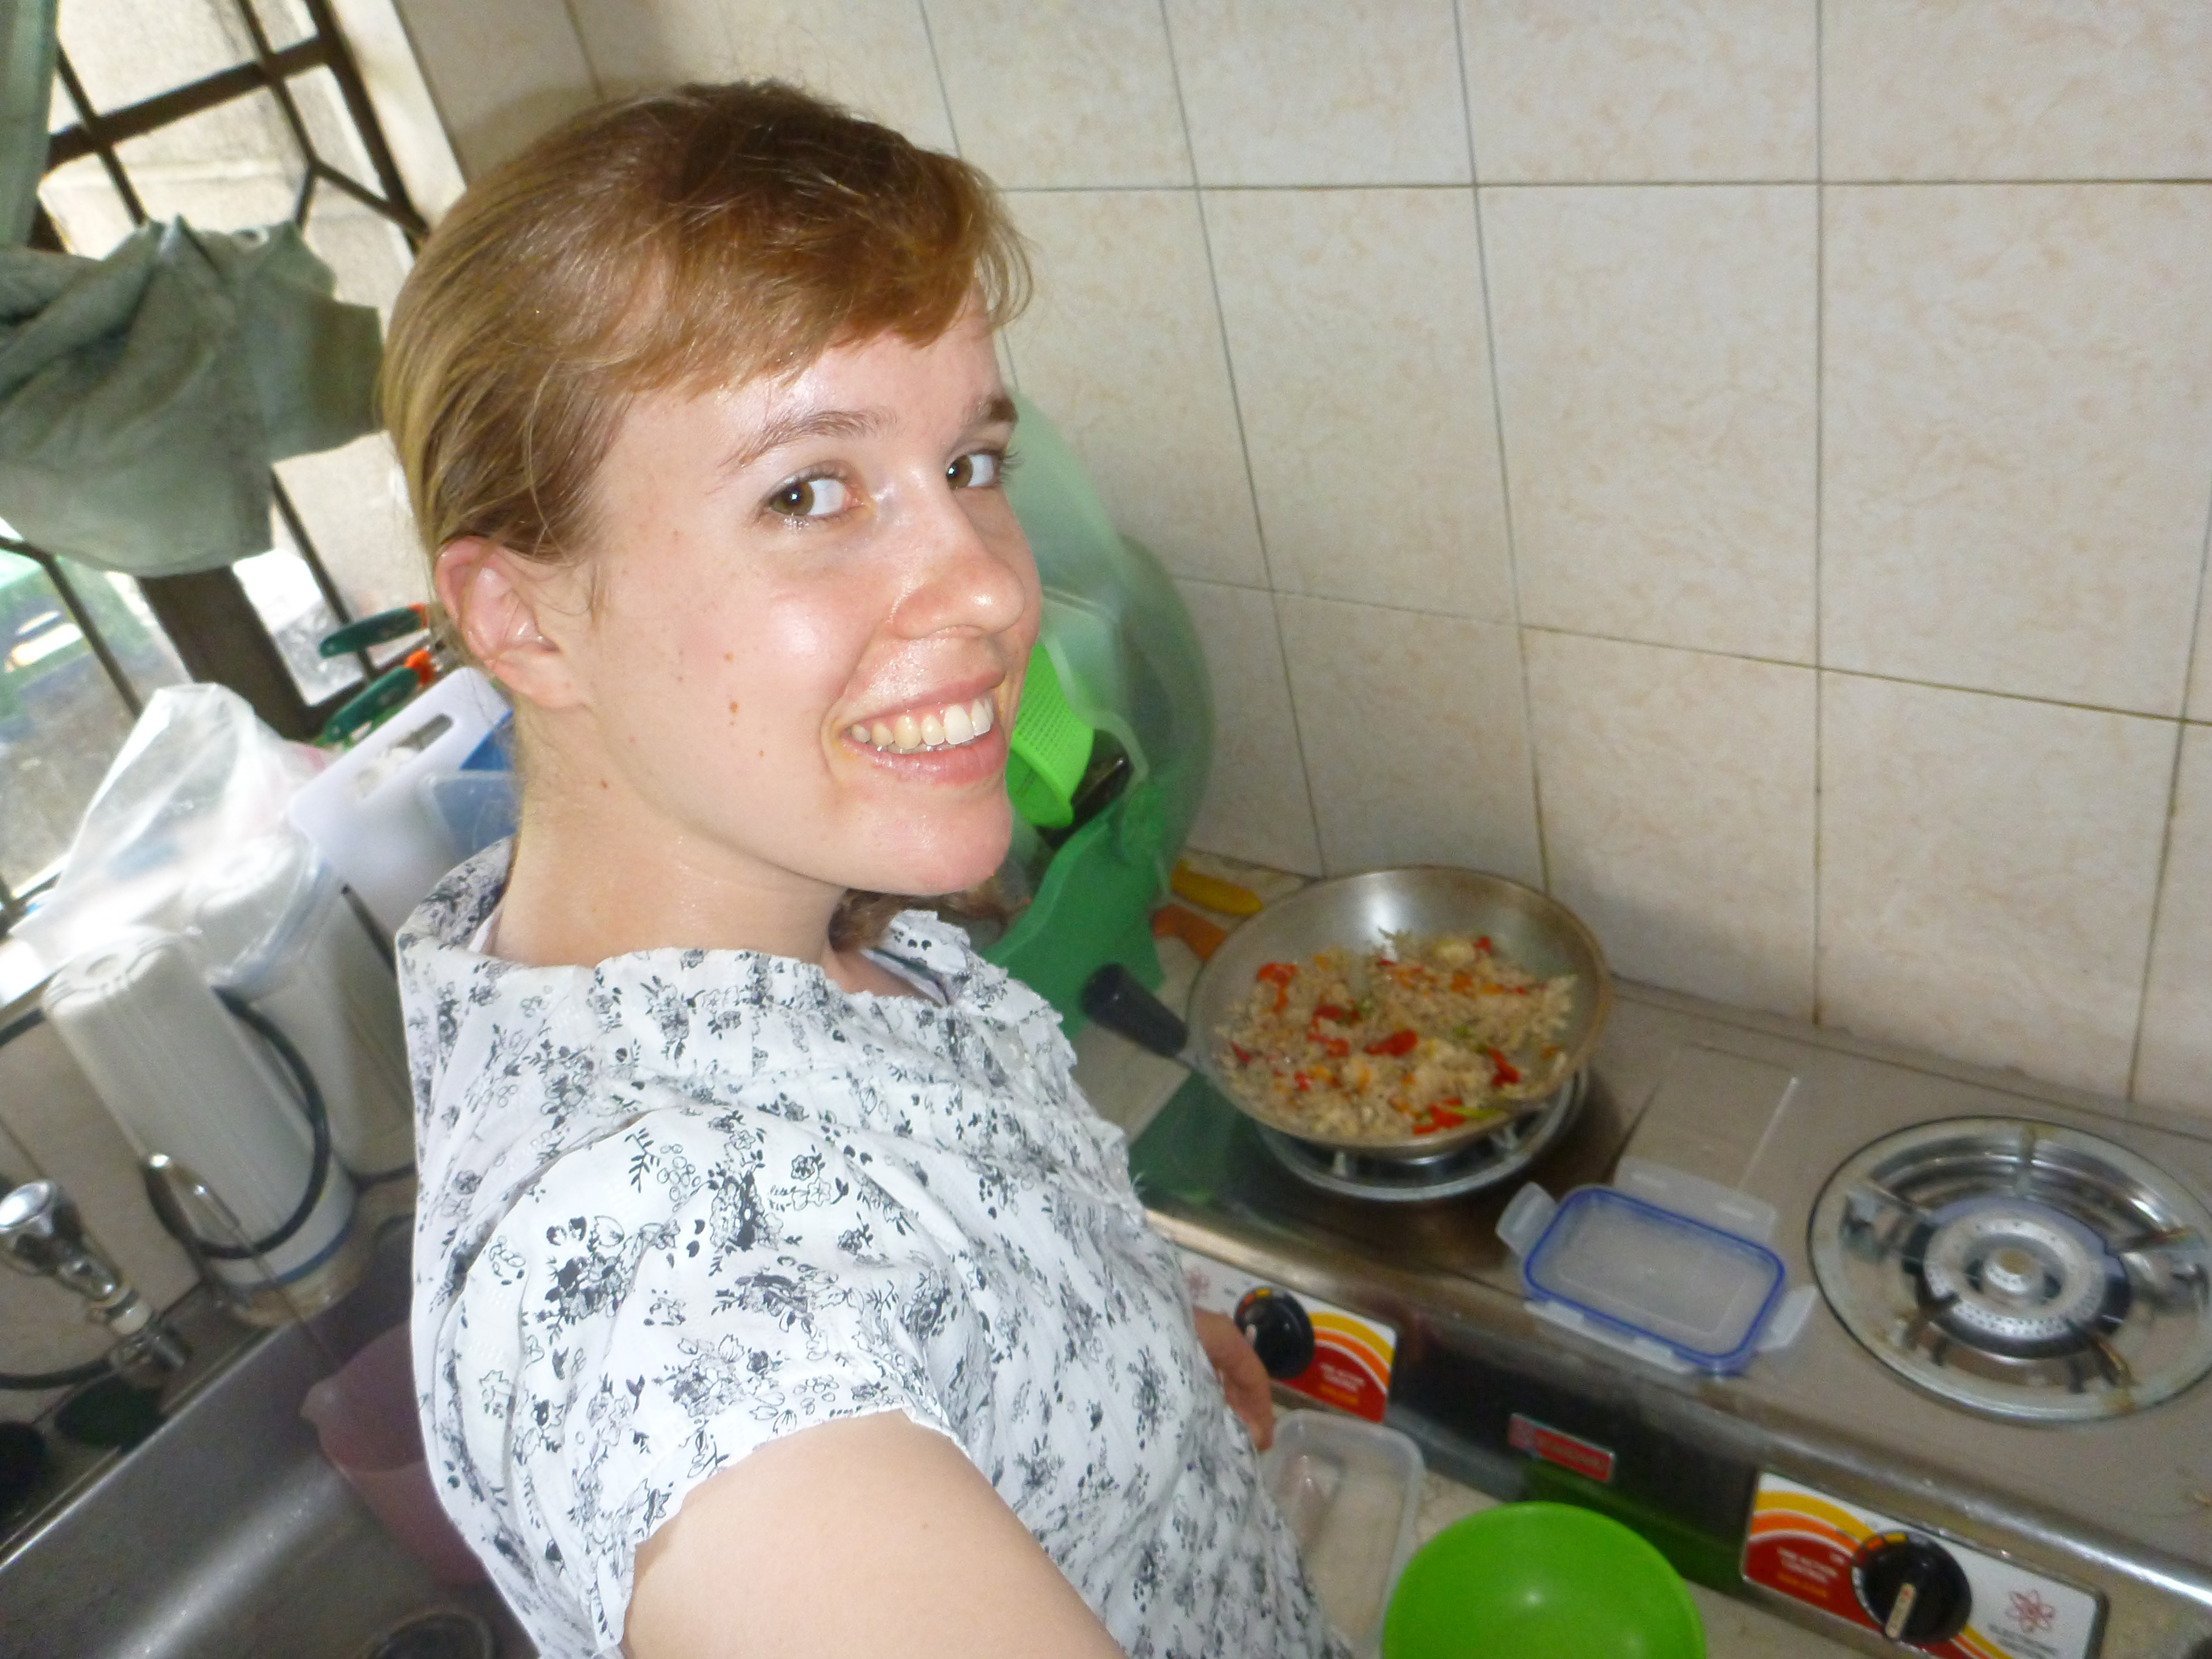 making rice in her appartment